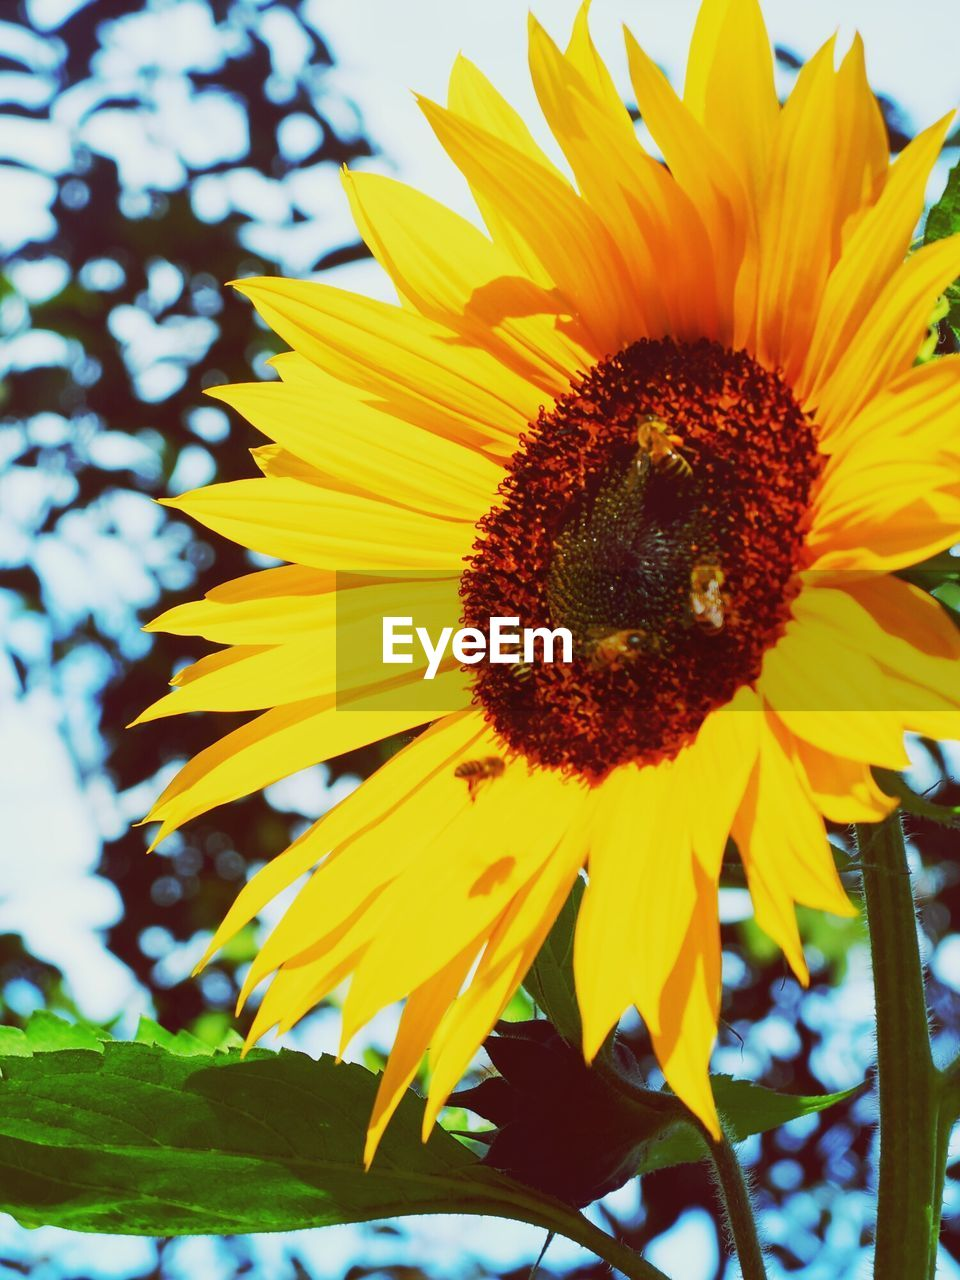 flower, yellow, petal, fragility, beauty in nature, nature, growth, sunflower, flower head, freshness, pollen, no people, close-up, outdoors, plant, day, blooming